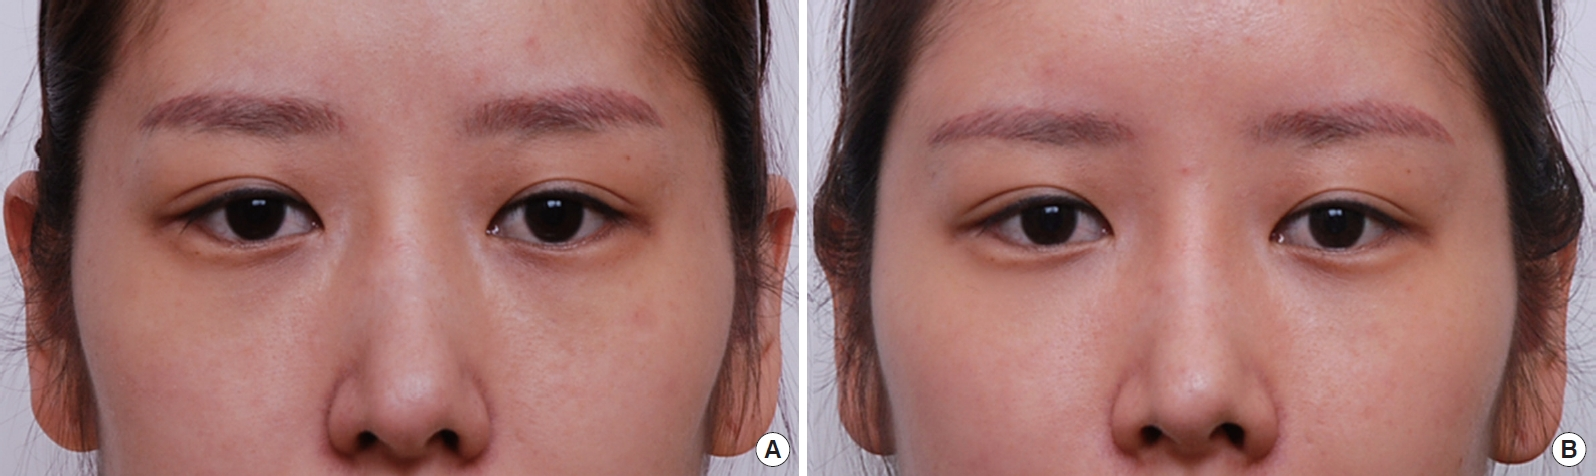 Correction of Dark Coloration of the Lower Eyelid Skin with